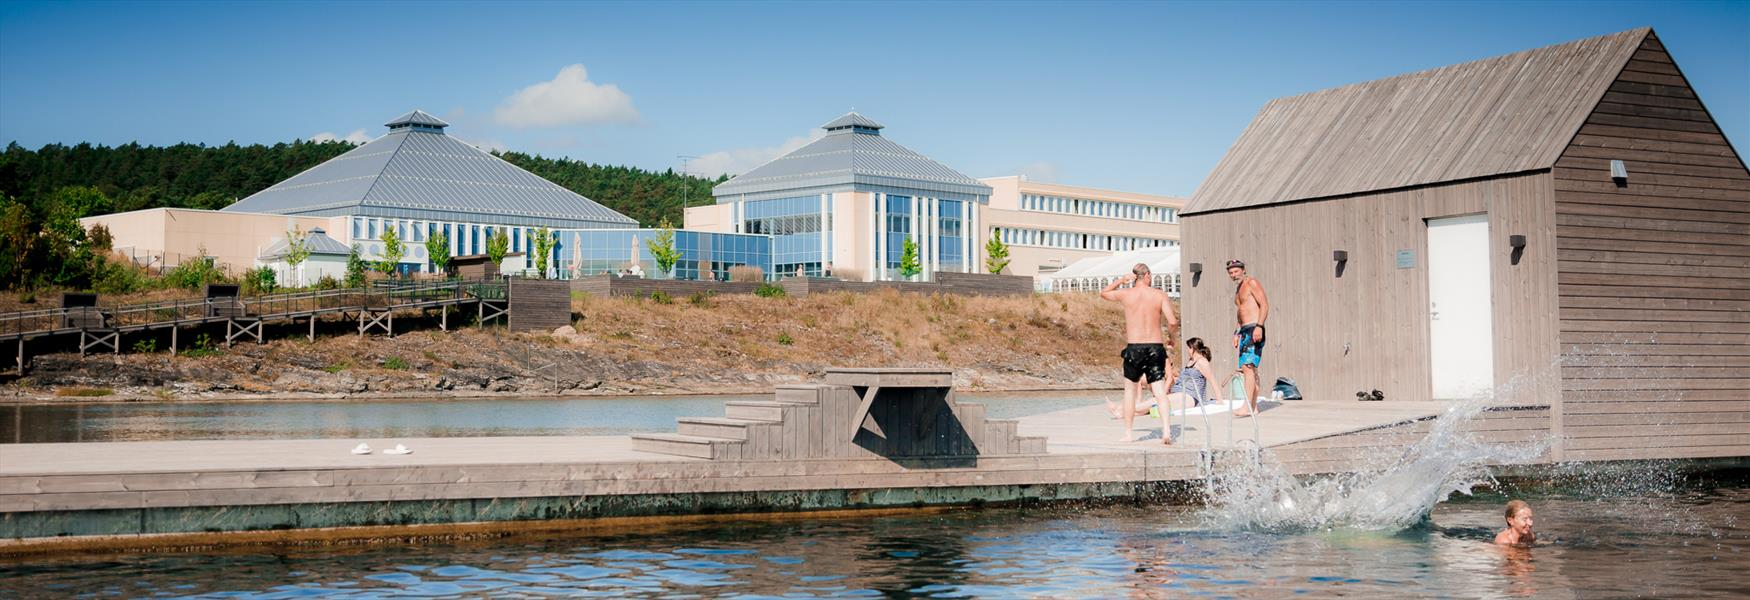 bathing jetty at Quality Hotel Skjærgården in Langesund